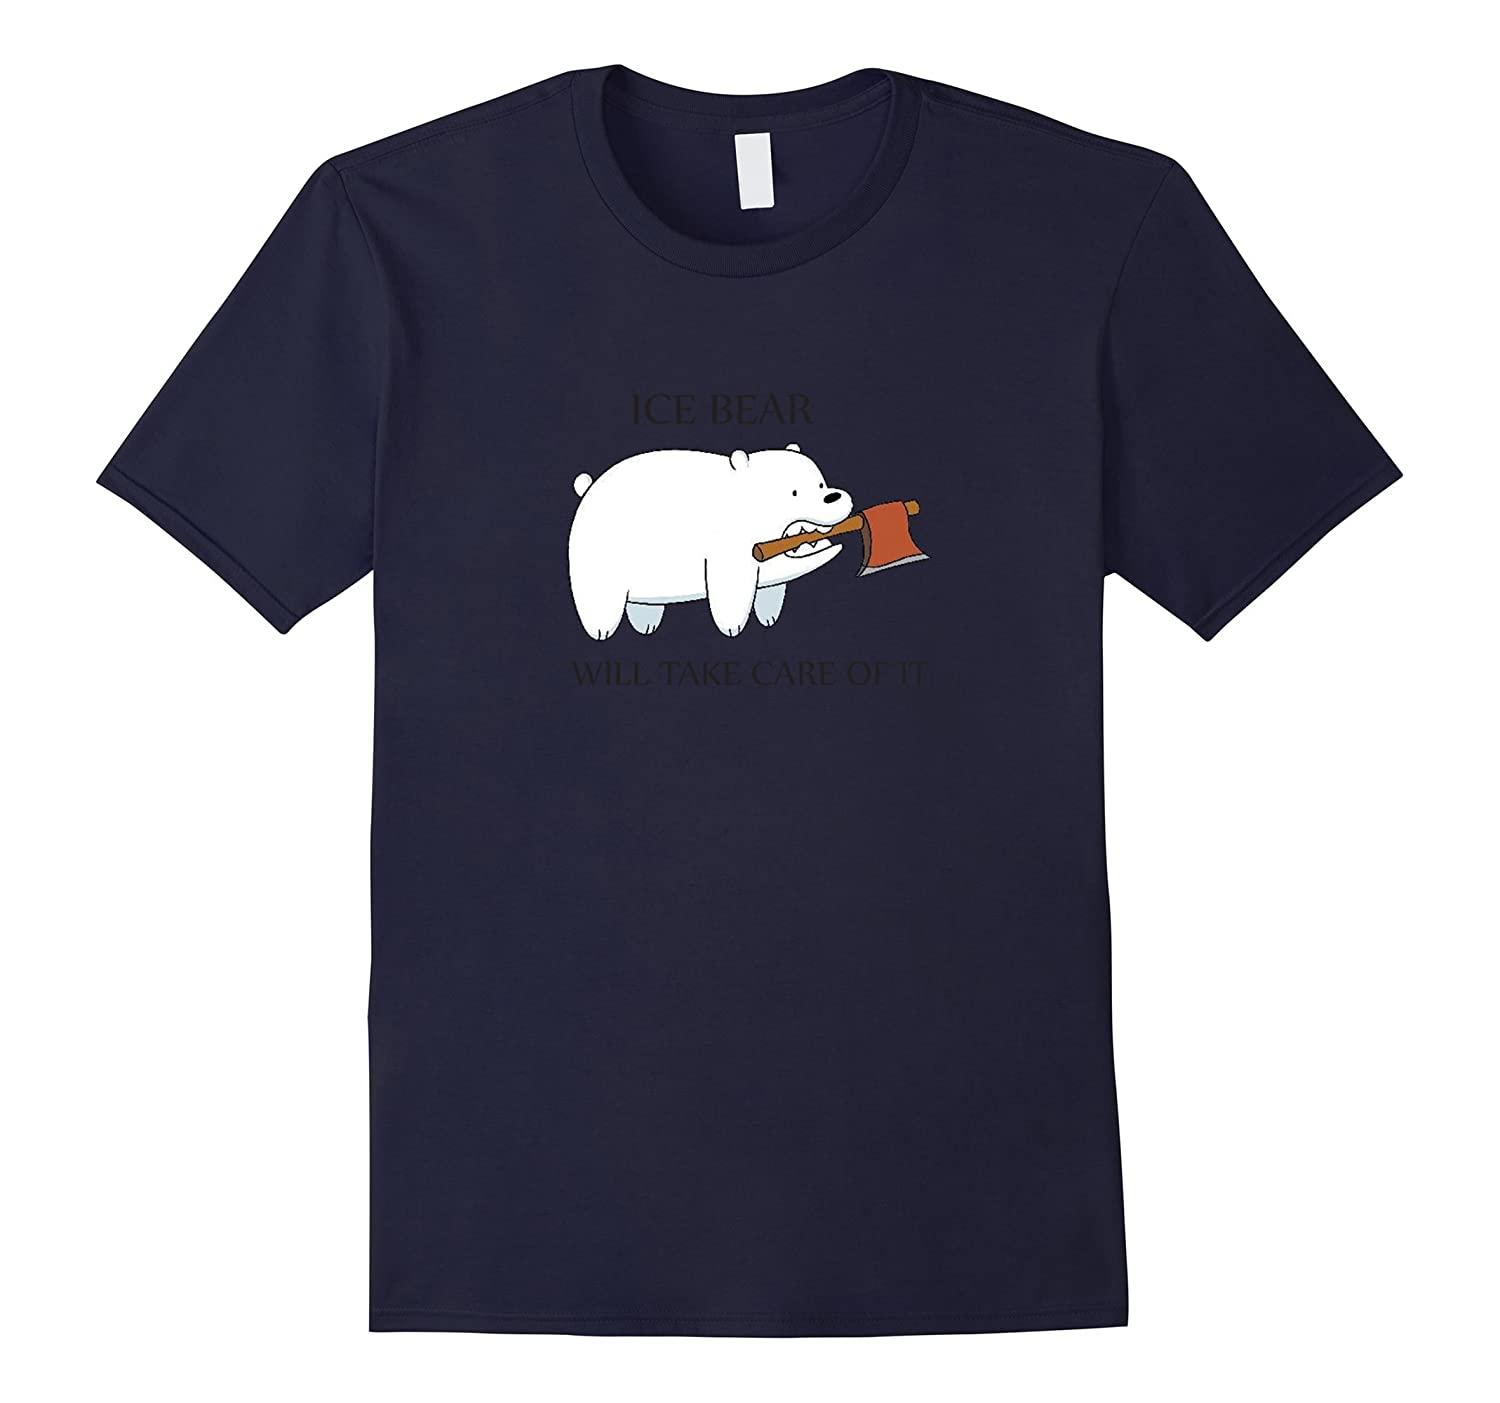 Funny-Ice-Bear-Will-Take Care Of It t-shirt-Art